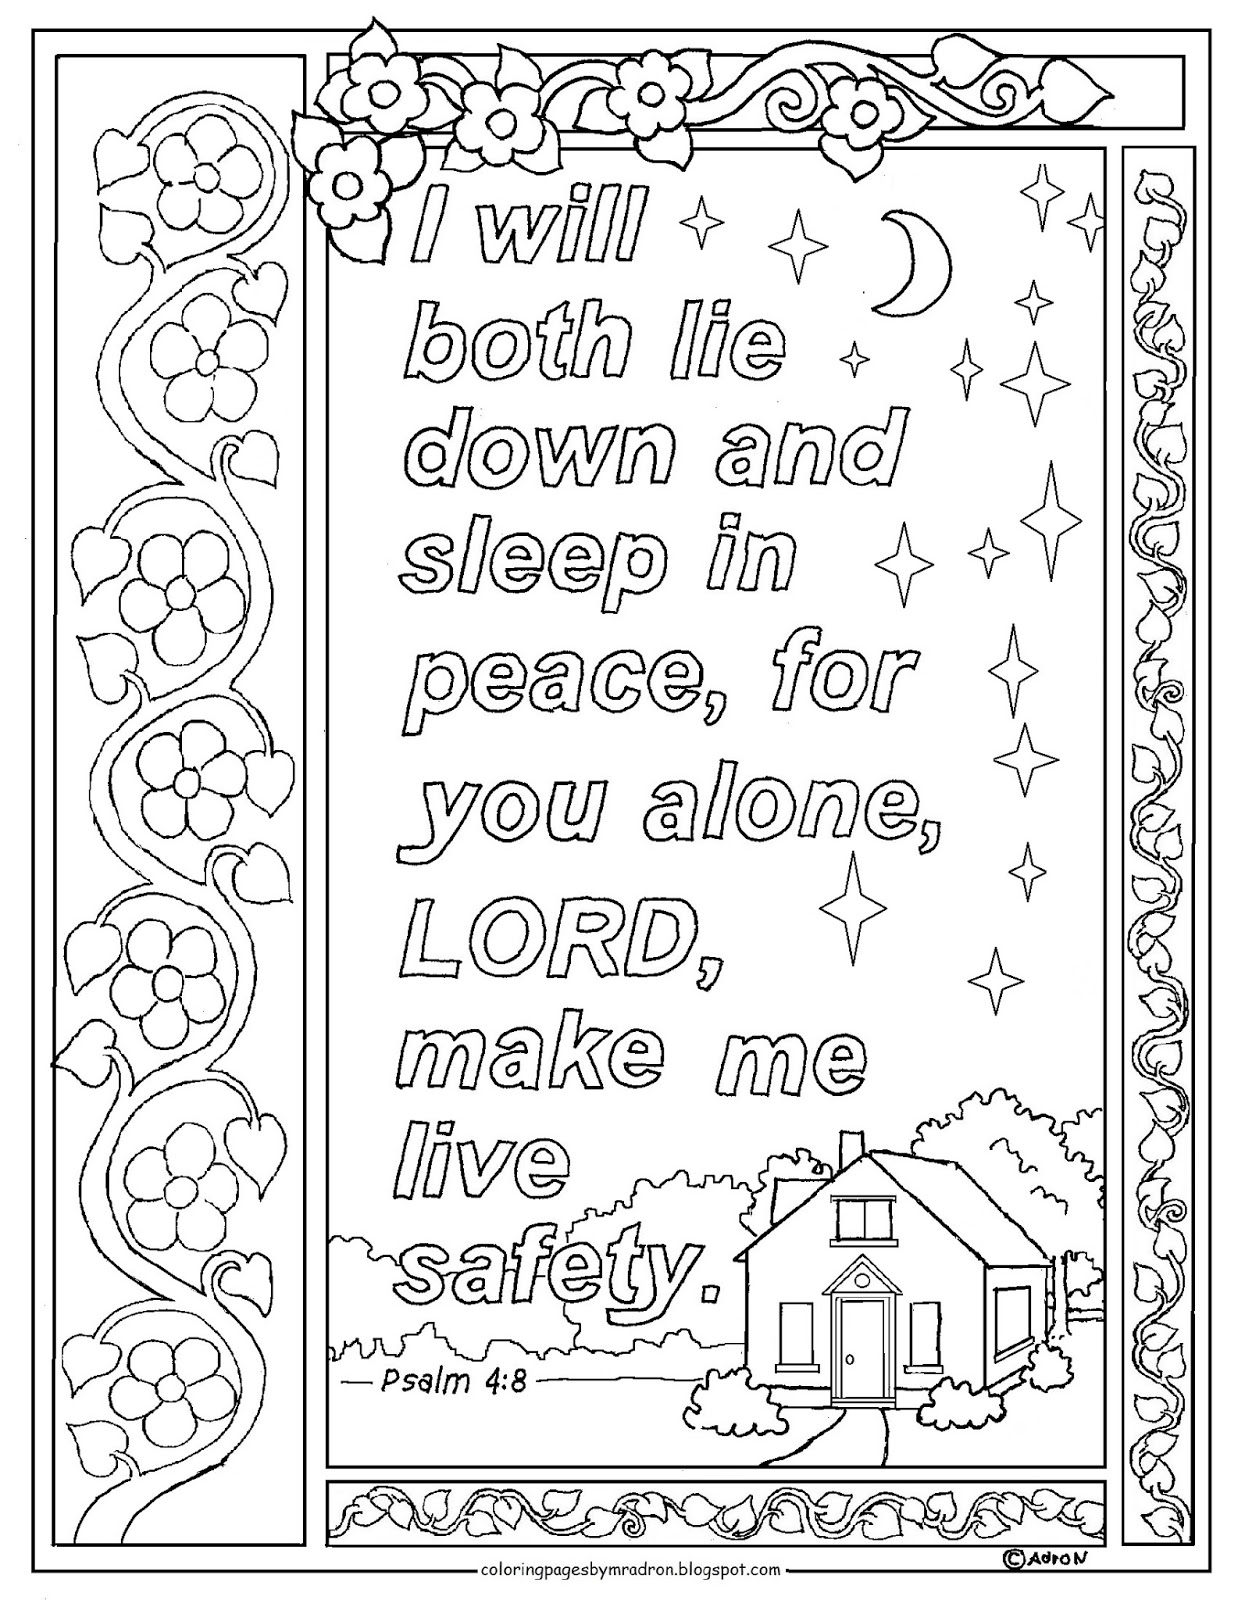 coloring psalm 8 coloring pages for kids by mr adron psalm 48 print and 8 coloring psalm